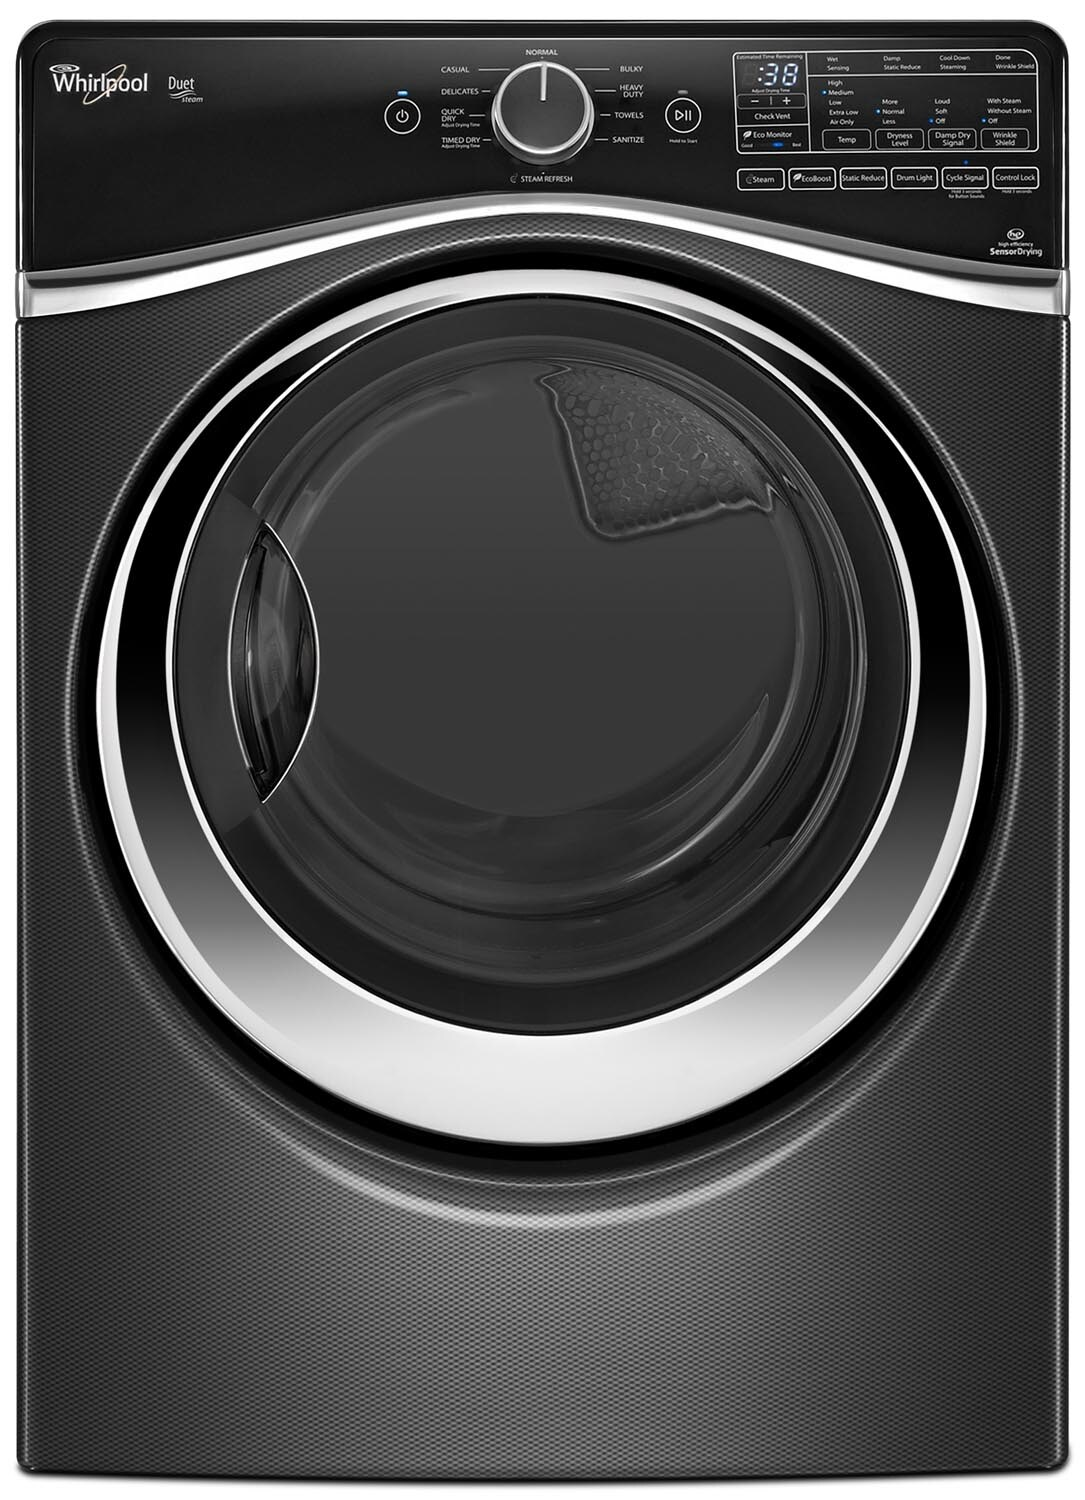 Whirlpool Dryer (7.3 Cu. Ft.) YWED97HEDBD